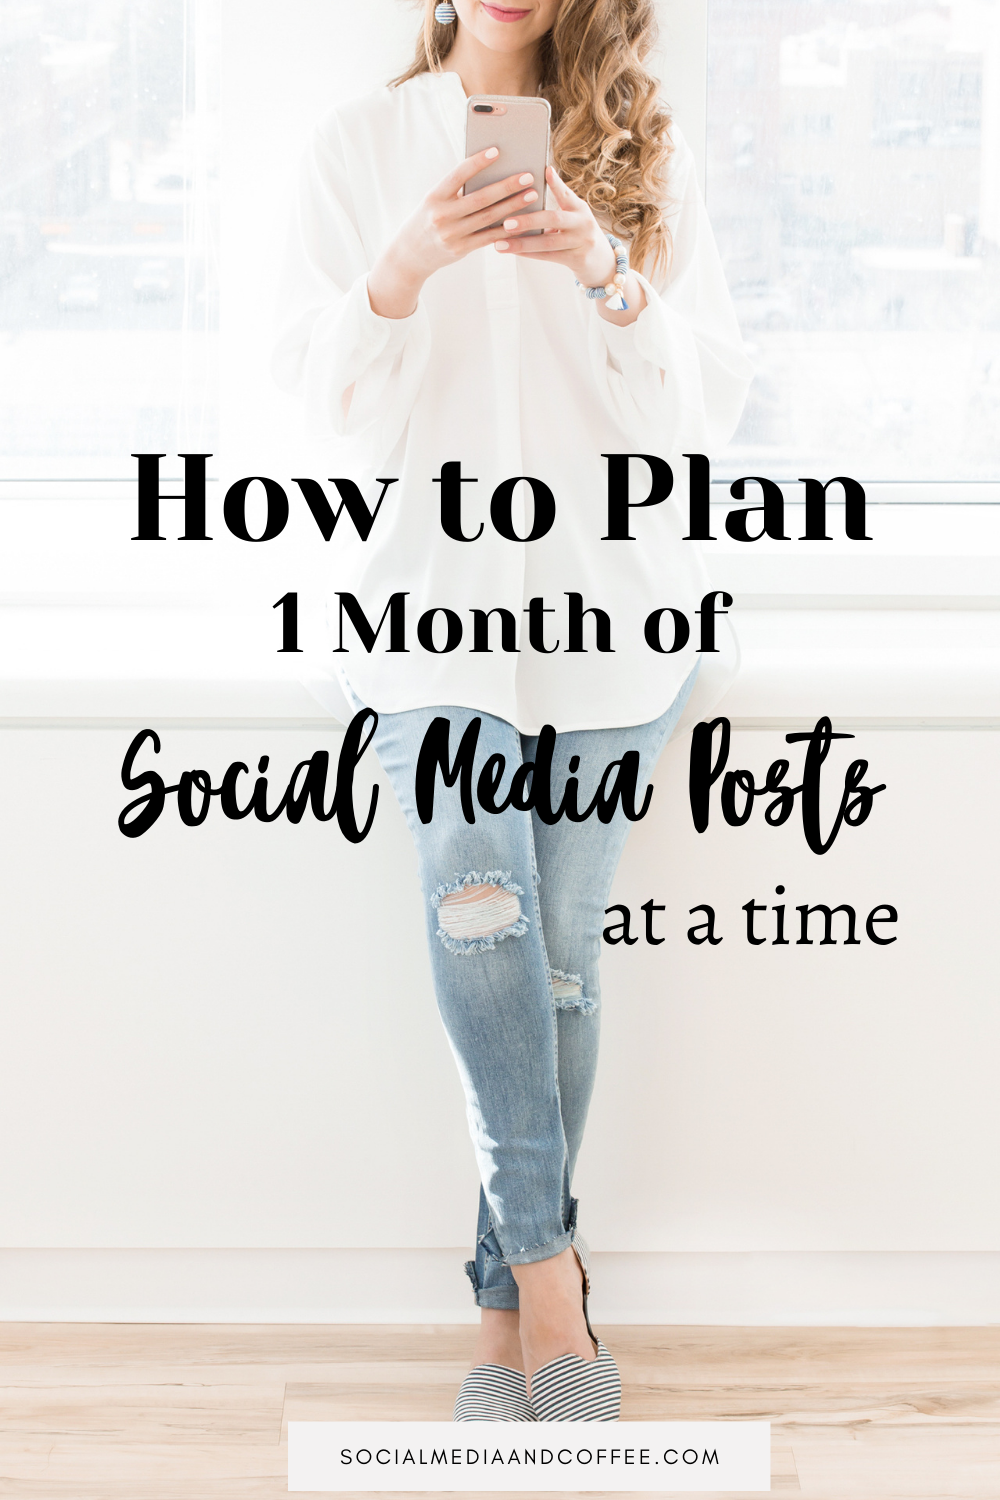 Would you like to have all your month's posts planned in one session? Here's my system for breaking down the month and getting it planned! Social Media markeitng | online business | Facebook marketing | Instagram marketing | Twitter | productivity | small business marketing | entrepreneur | marketing ideas | social media tips | #productivity #socialmedia #marketing #Facebook #Instagram #Twitter #entrepreneur #smallbusiness